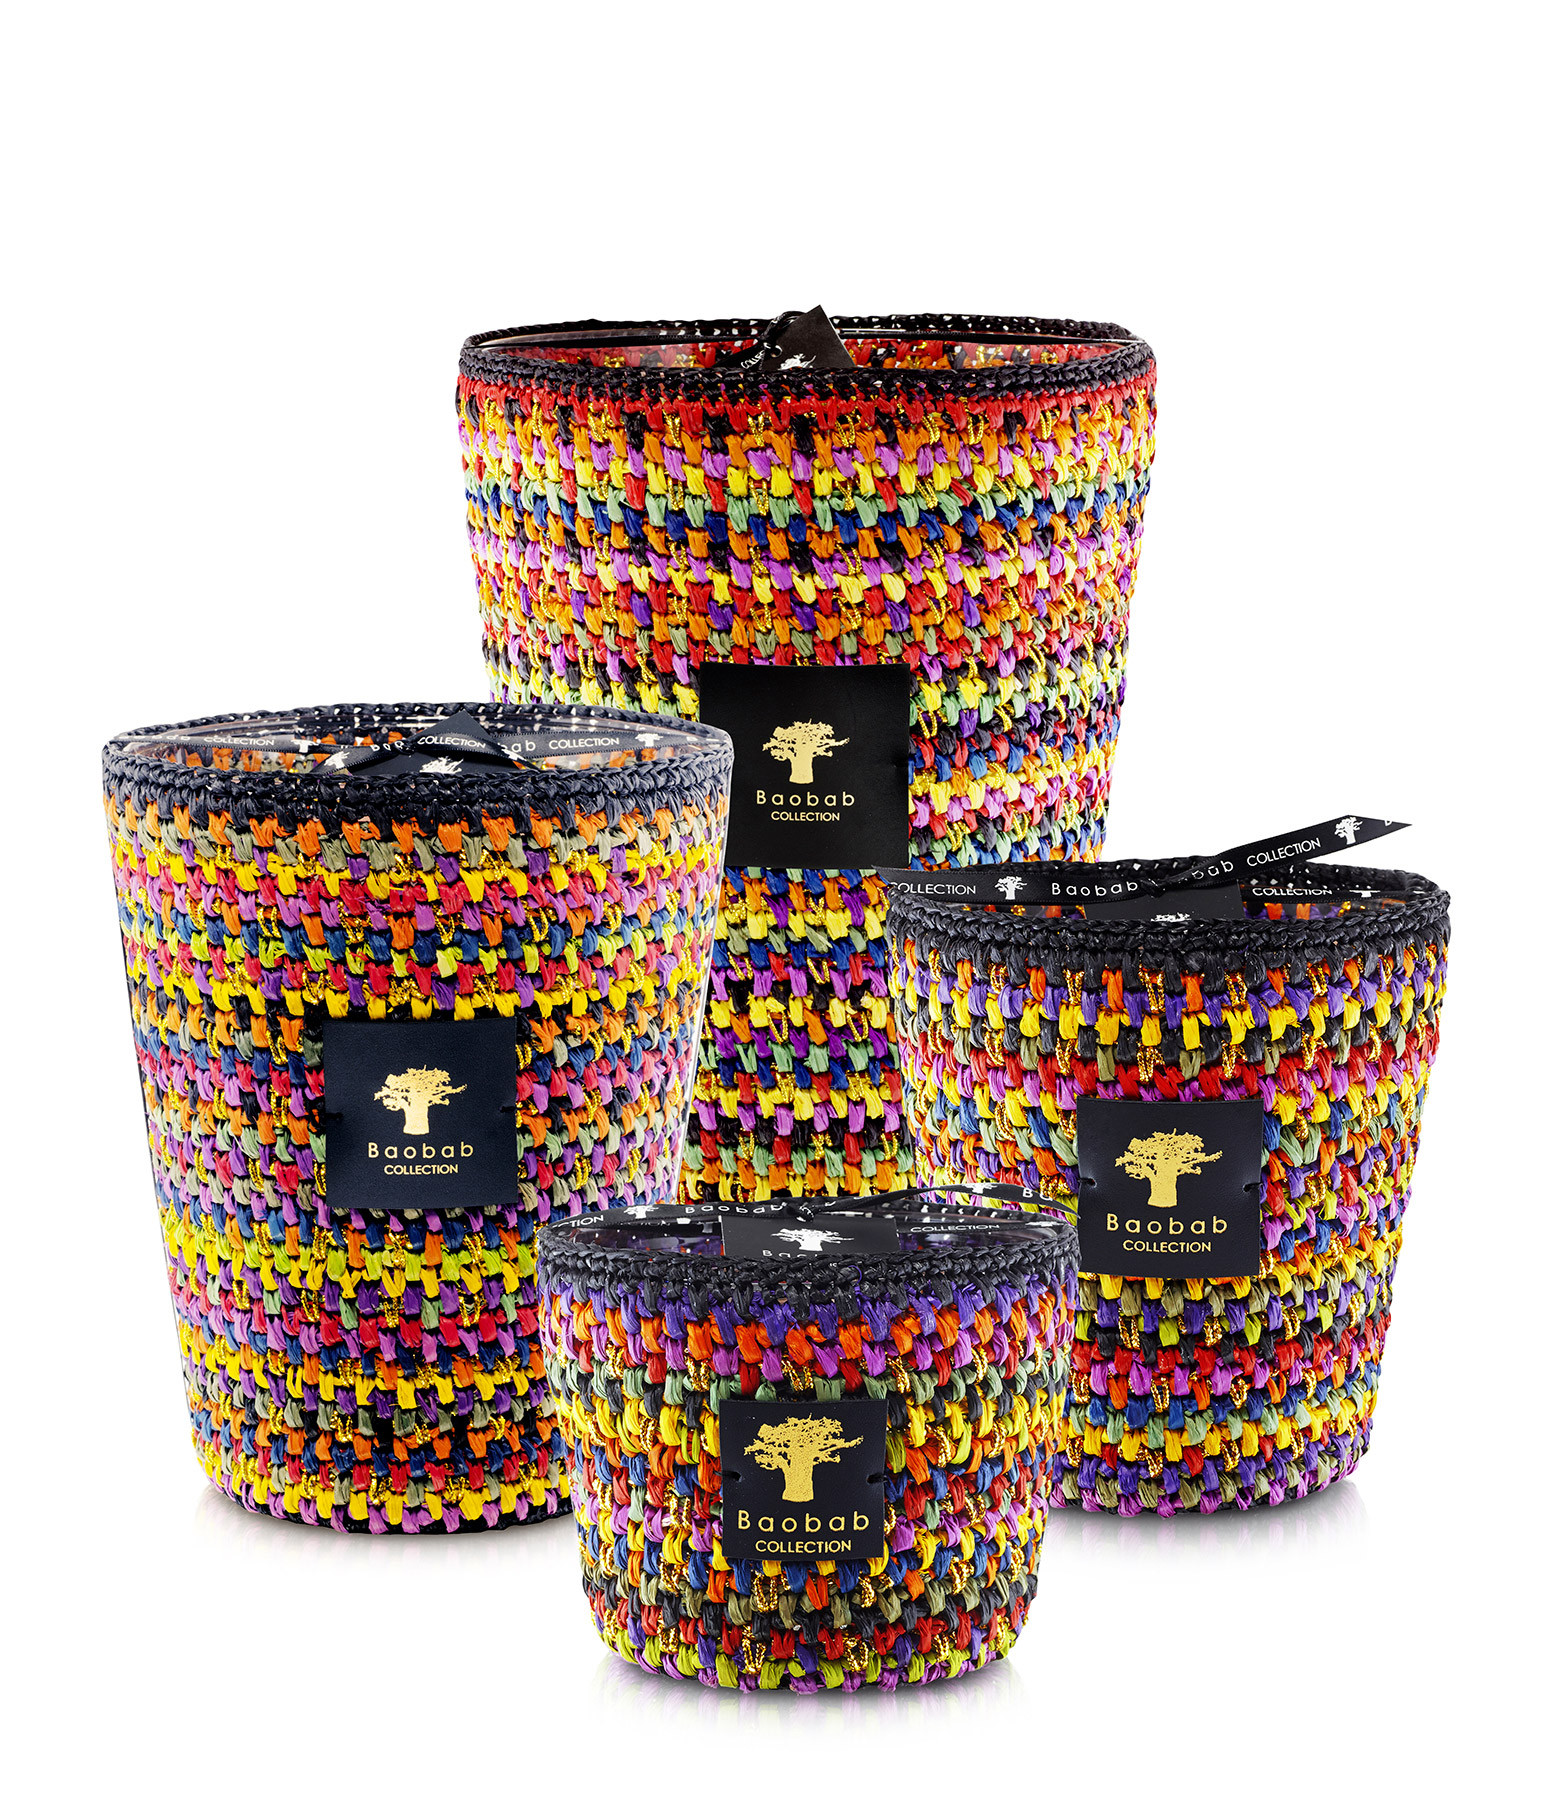 BAOBAB COLLECTION - Bougie Max 16 Modernista Raffia Mitia